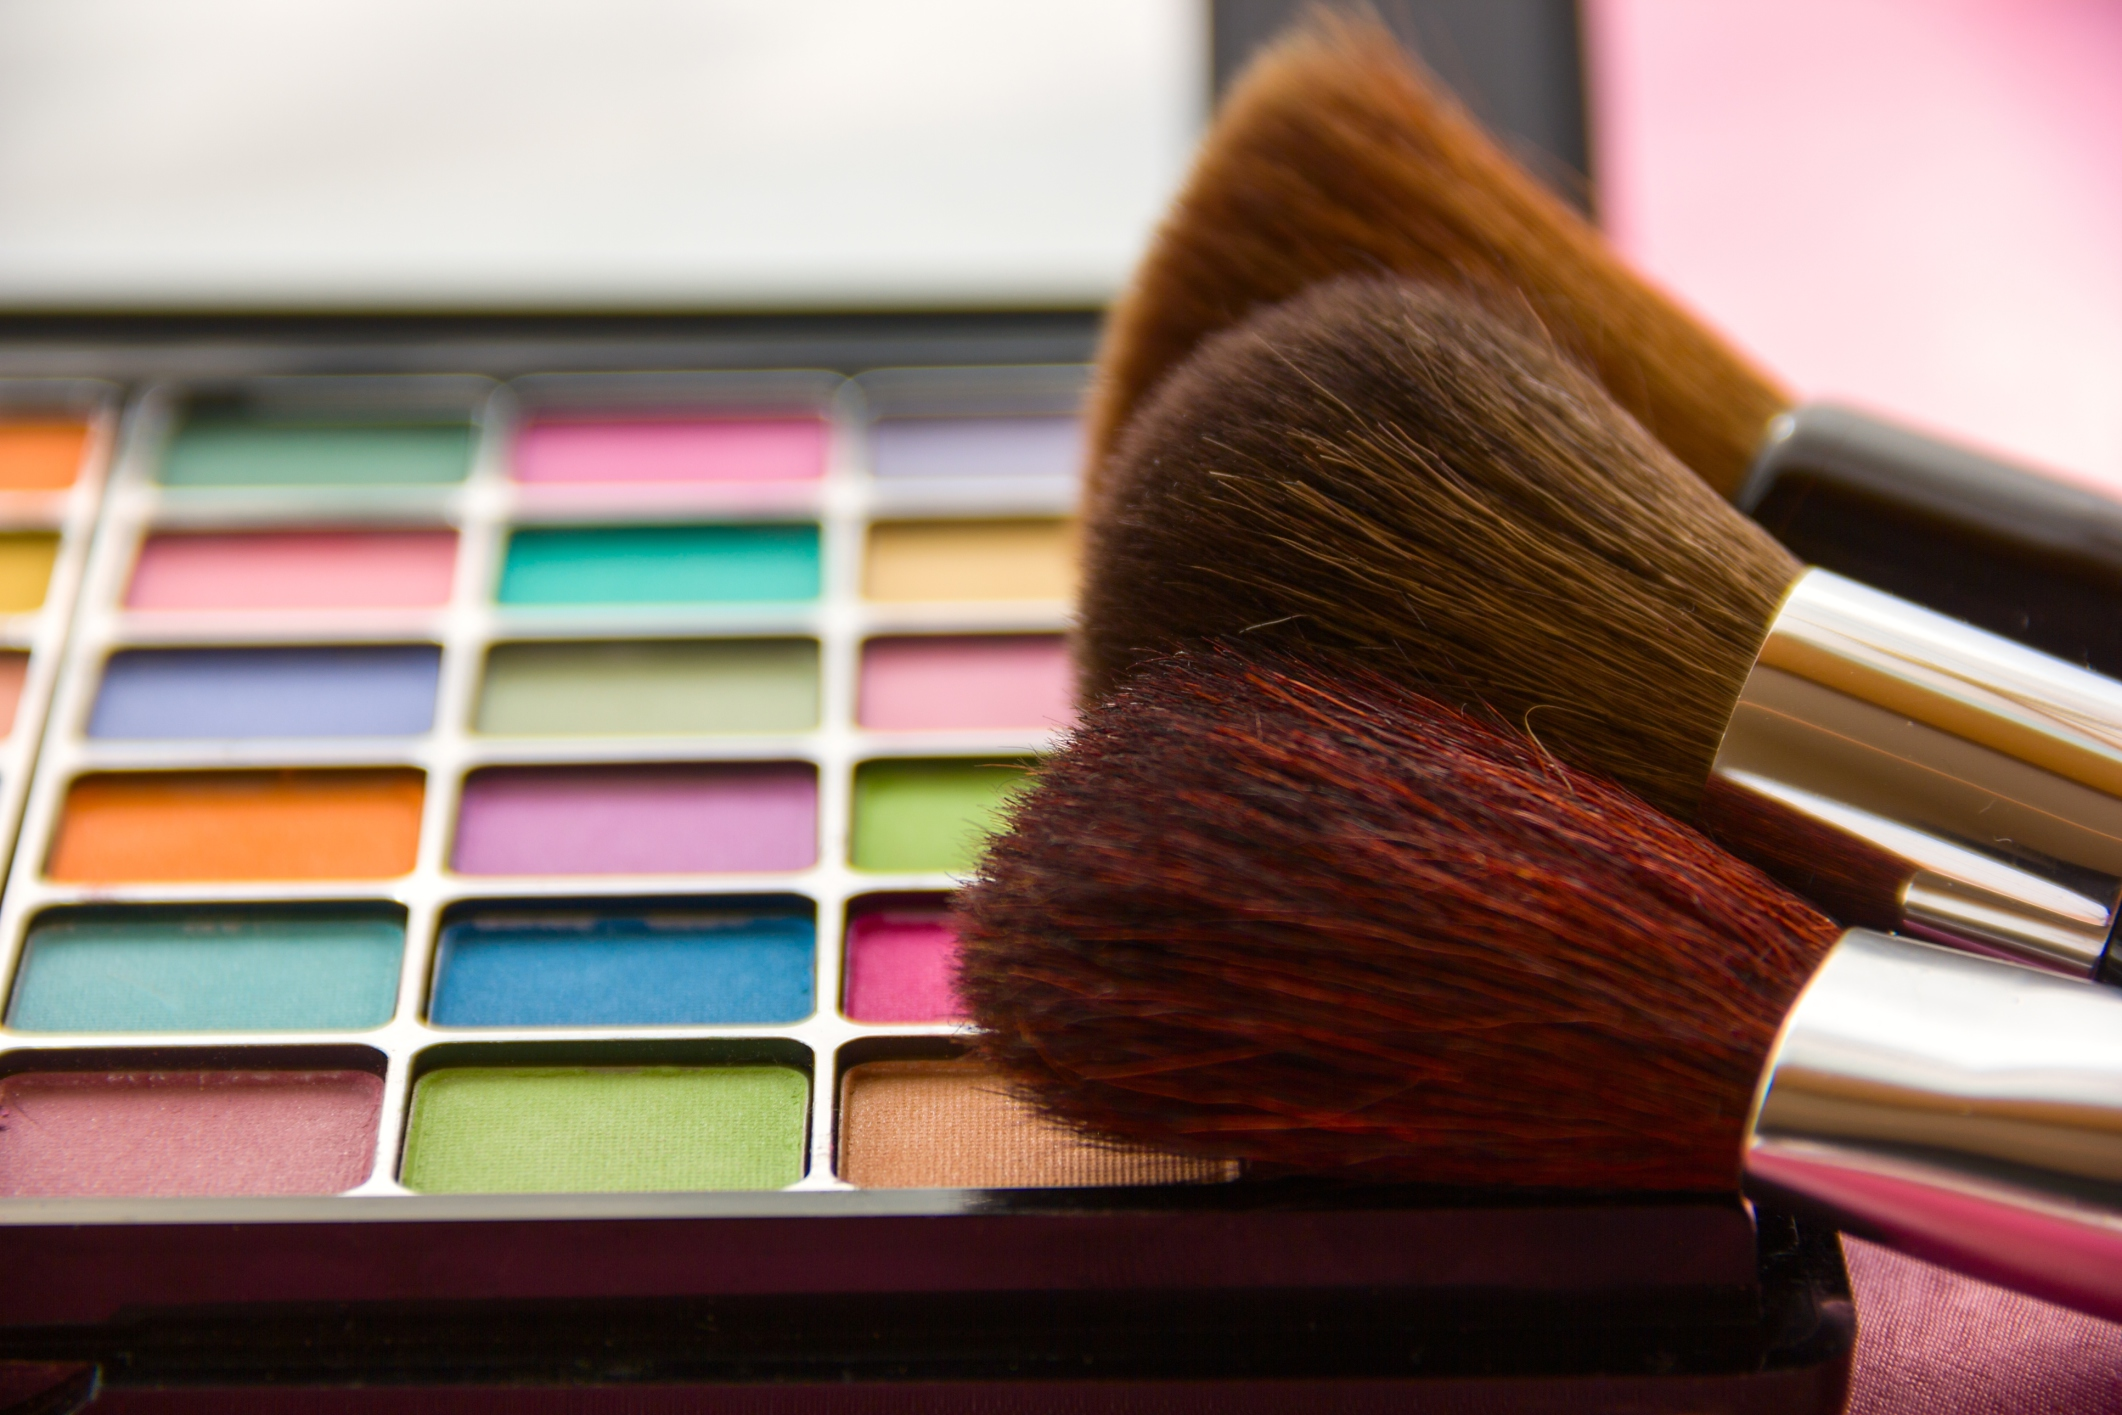 What Type of License is Needed to Open a Makeup Business